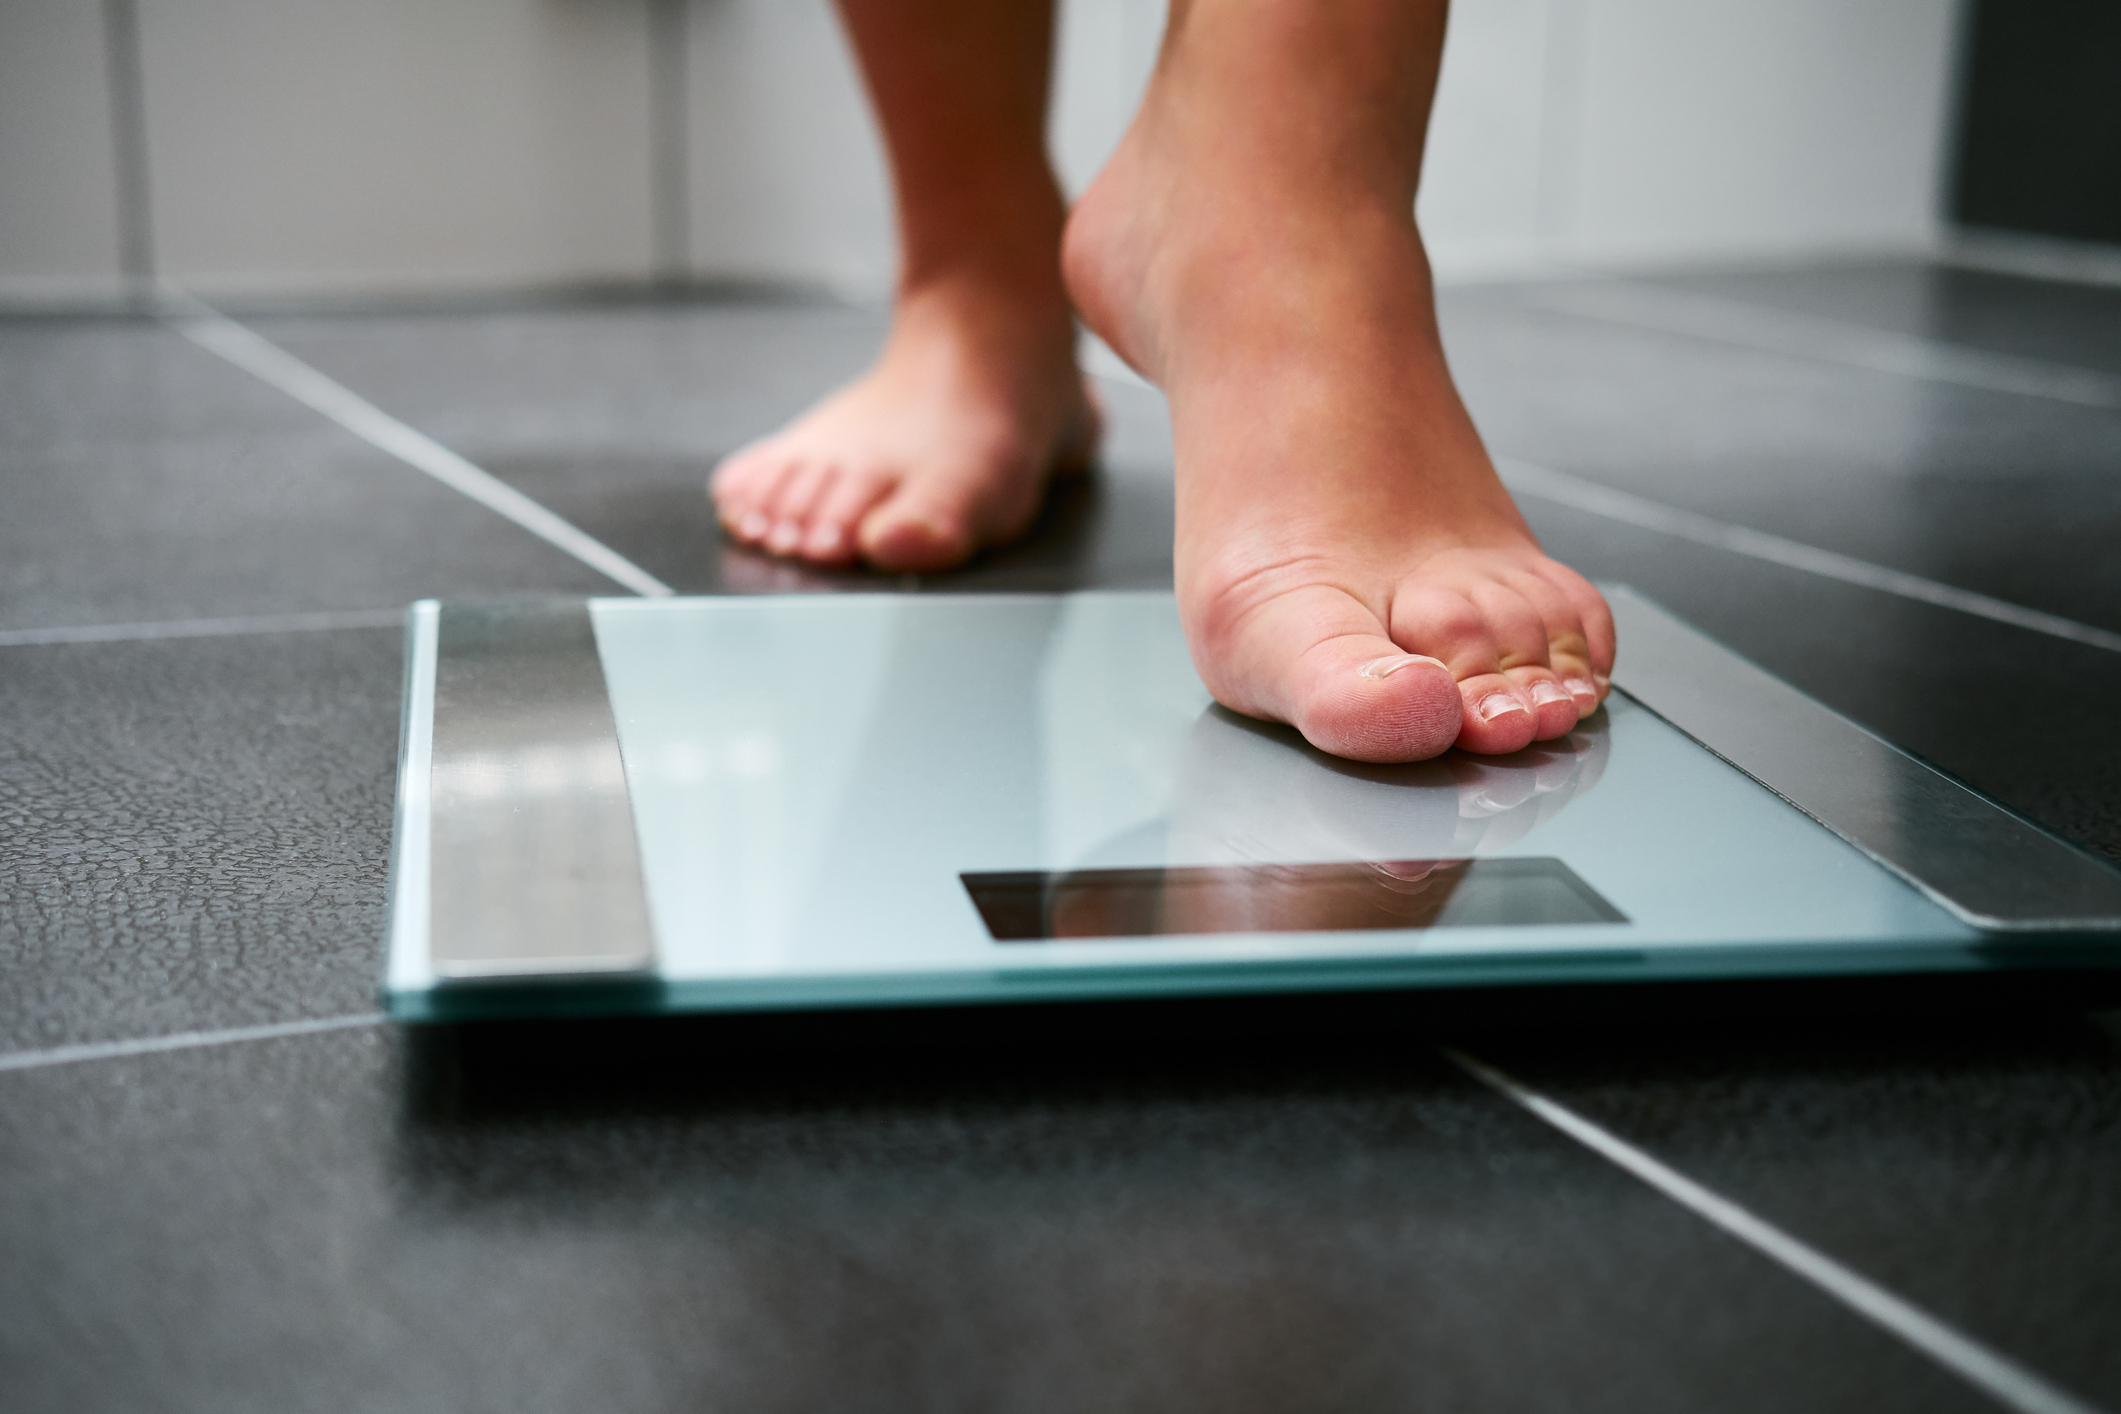 Even mild obesity linked to severe COVID-19, death, in study